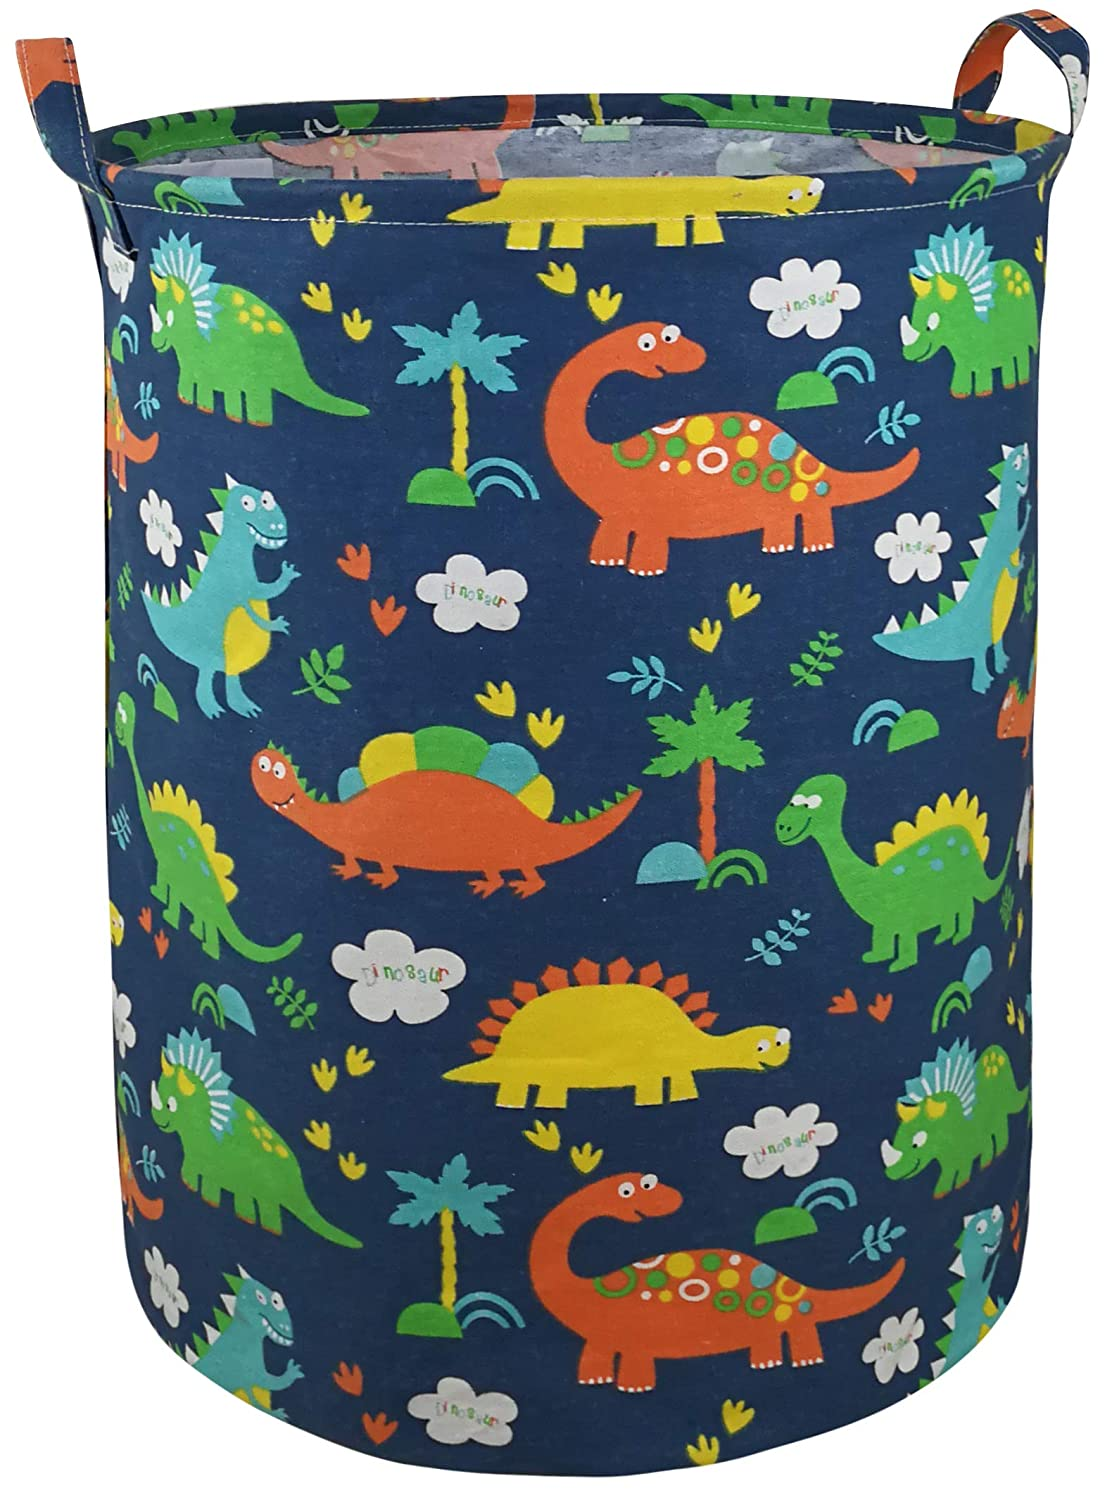 """AYTG 19.7"""" Round Canvas Large Clothes Basket Laundry Hamper with Handles,Waterproof Cotton Storage Organizer Perfect for Kids Boys Girls Toys Room, Bedroom, Nursery,Home,Gift Basket(Dinosaur)"""